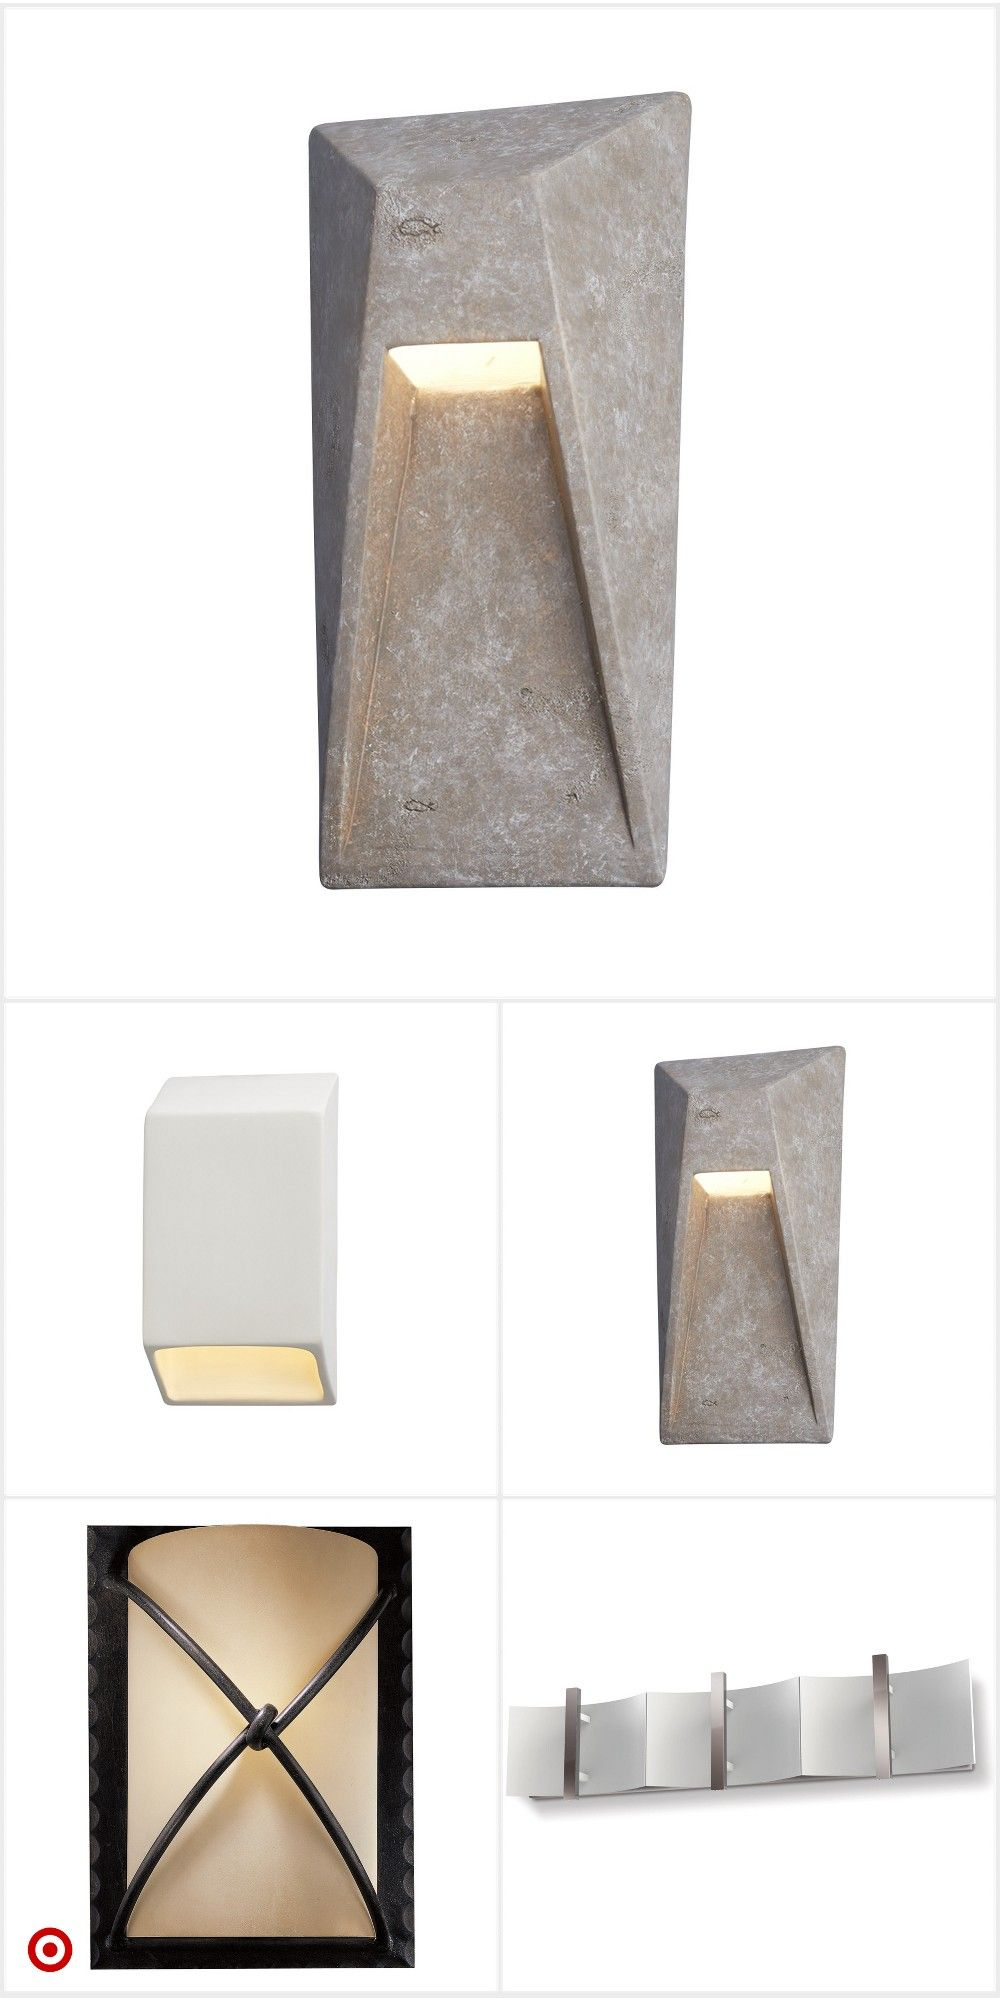 Shop Target For Wall Lights You Will Love At Great Low Prices Free Shipping On Orders Of 35 Or Free Same Day Pick Up Exterior Lighting Lights Concrete Lamp